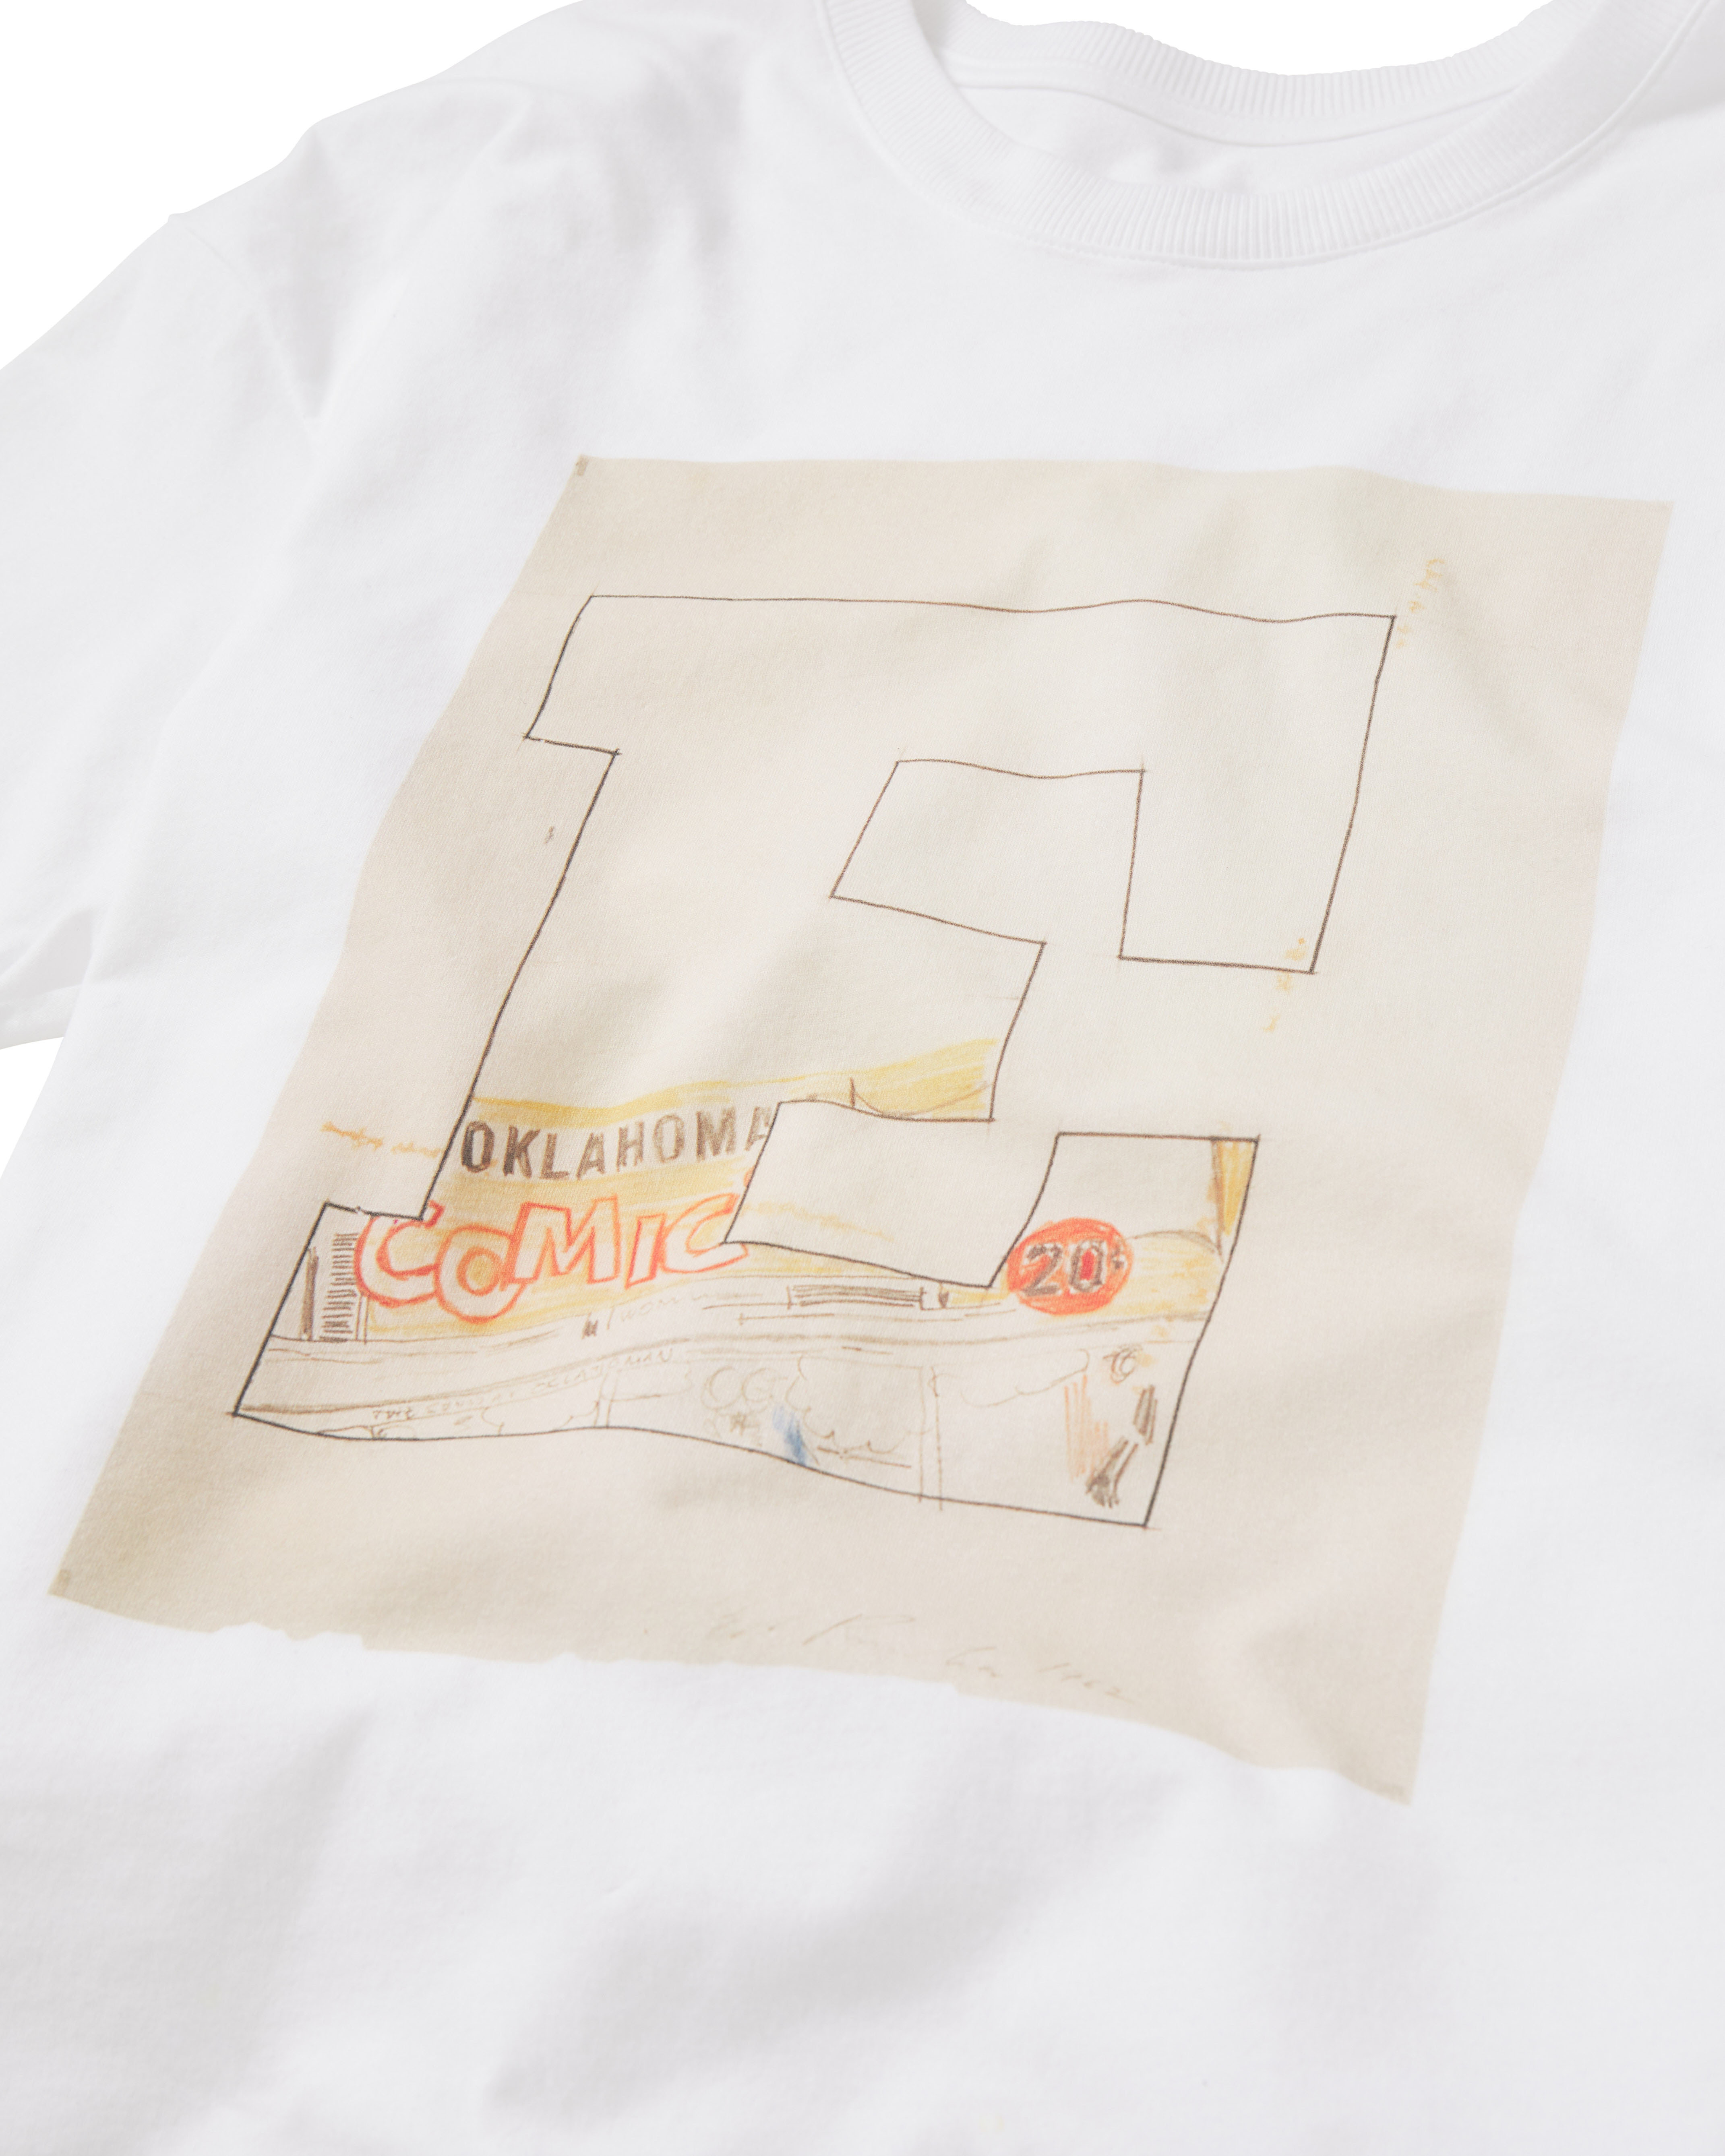 Cropped photo focusing on the primary design of a white T-shirt emblazoned with a large letter E